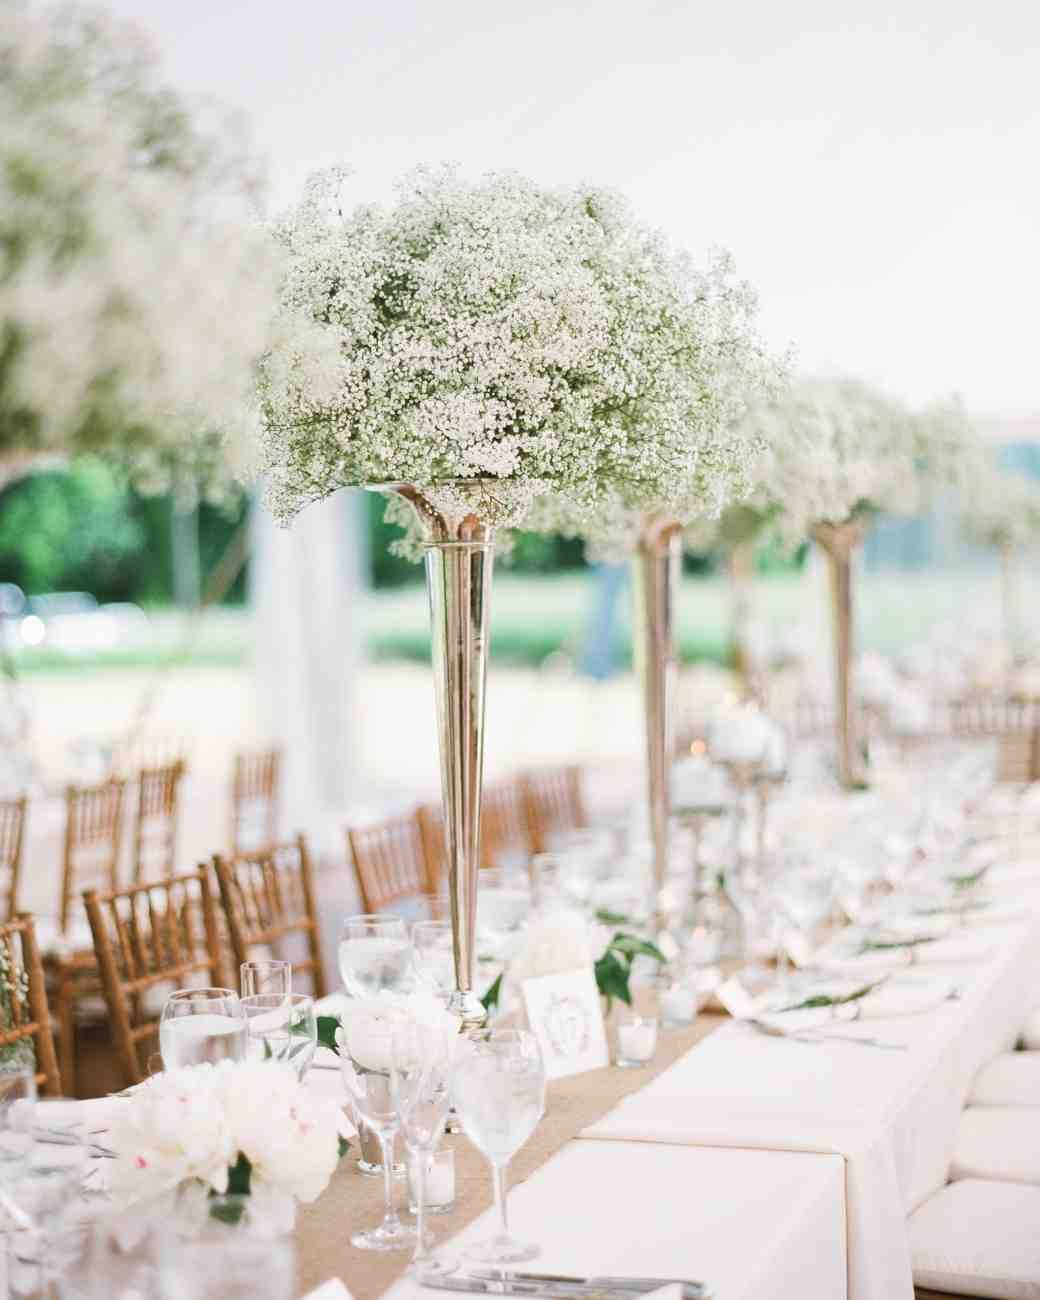 Affordable Wedding Centerpieces That Don